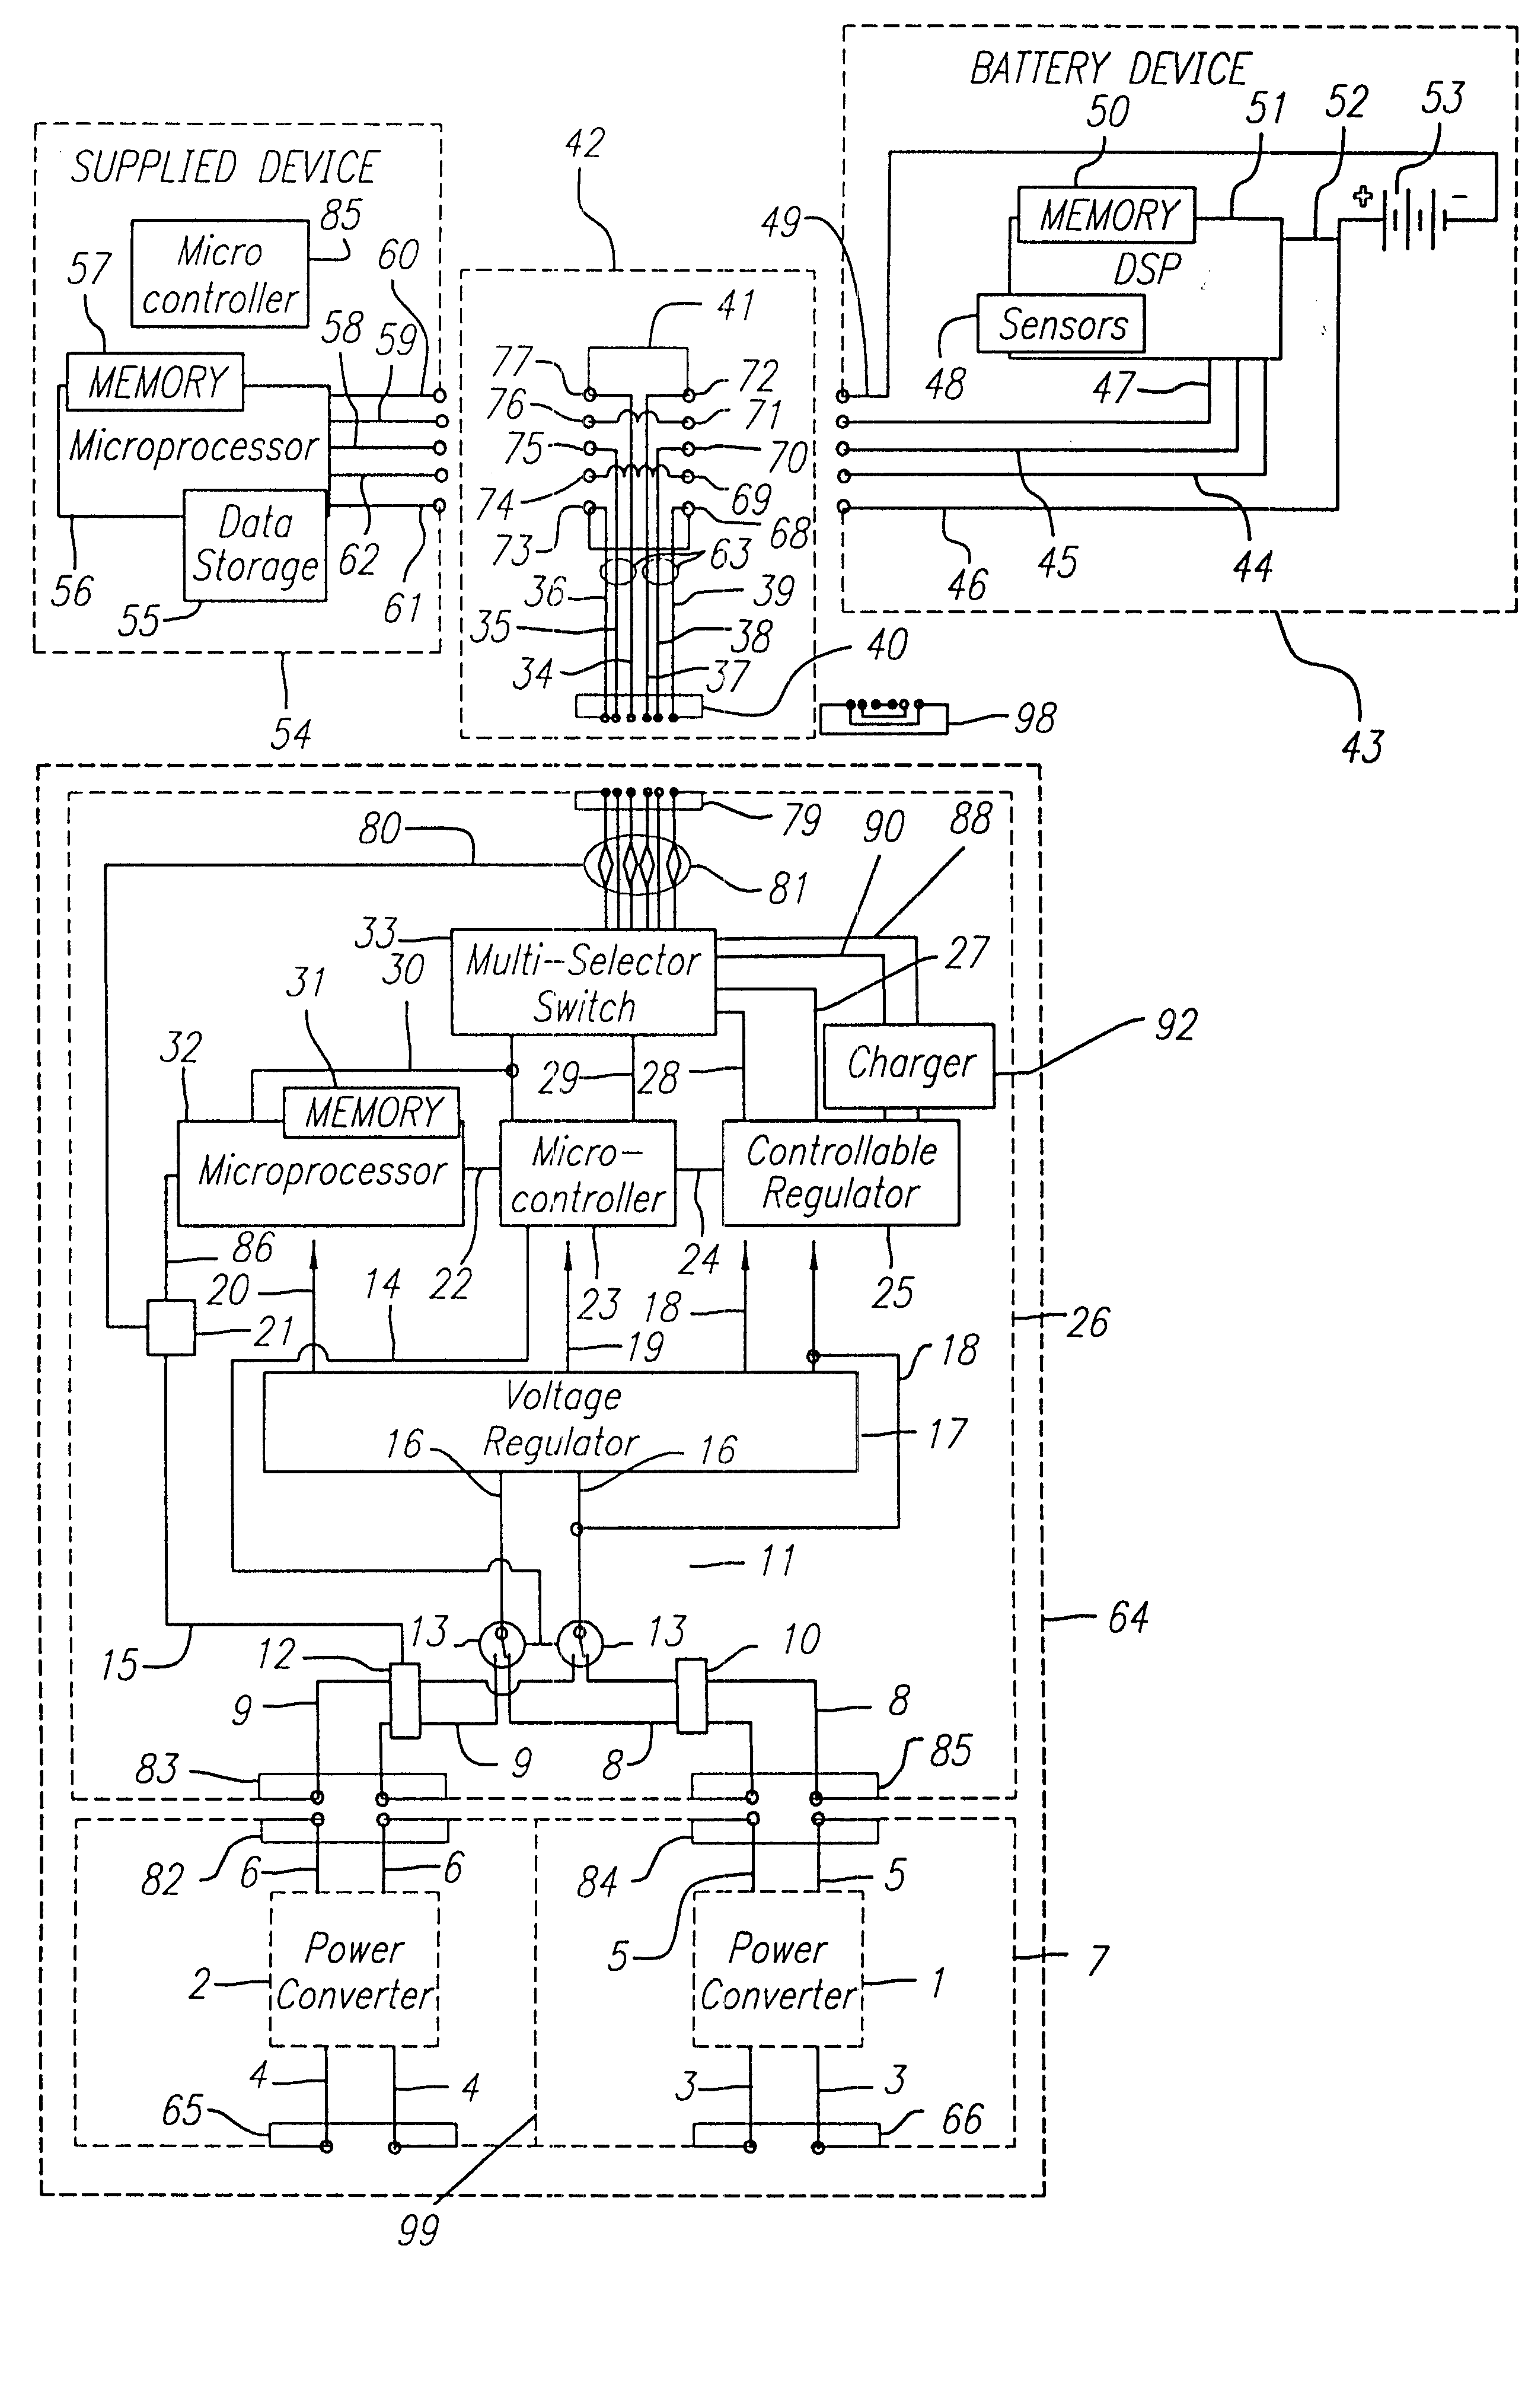 Diagram Additionally Ic Pinout Diagrams Moreover 74ls Series Gate